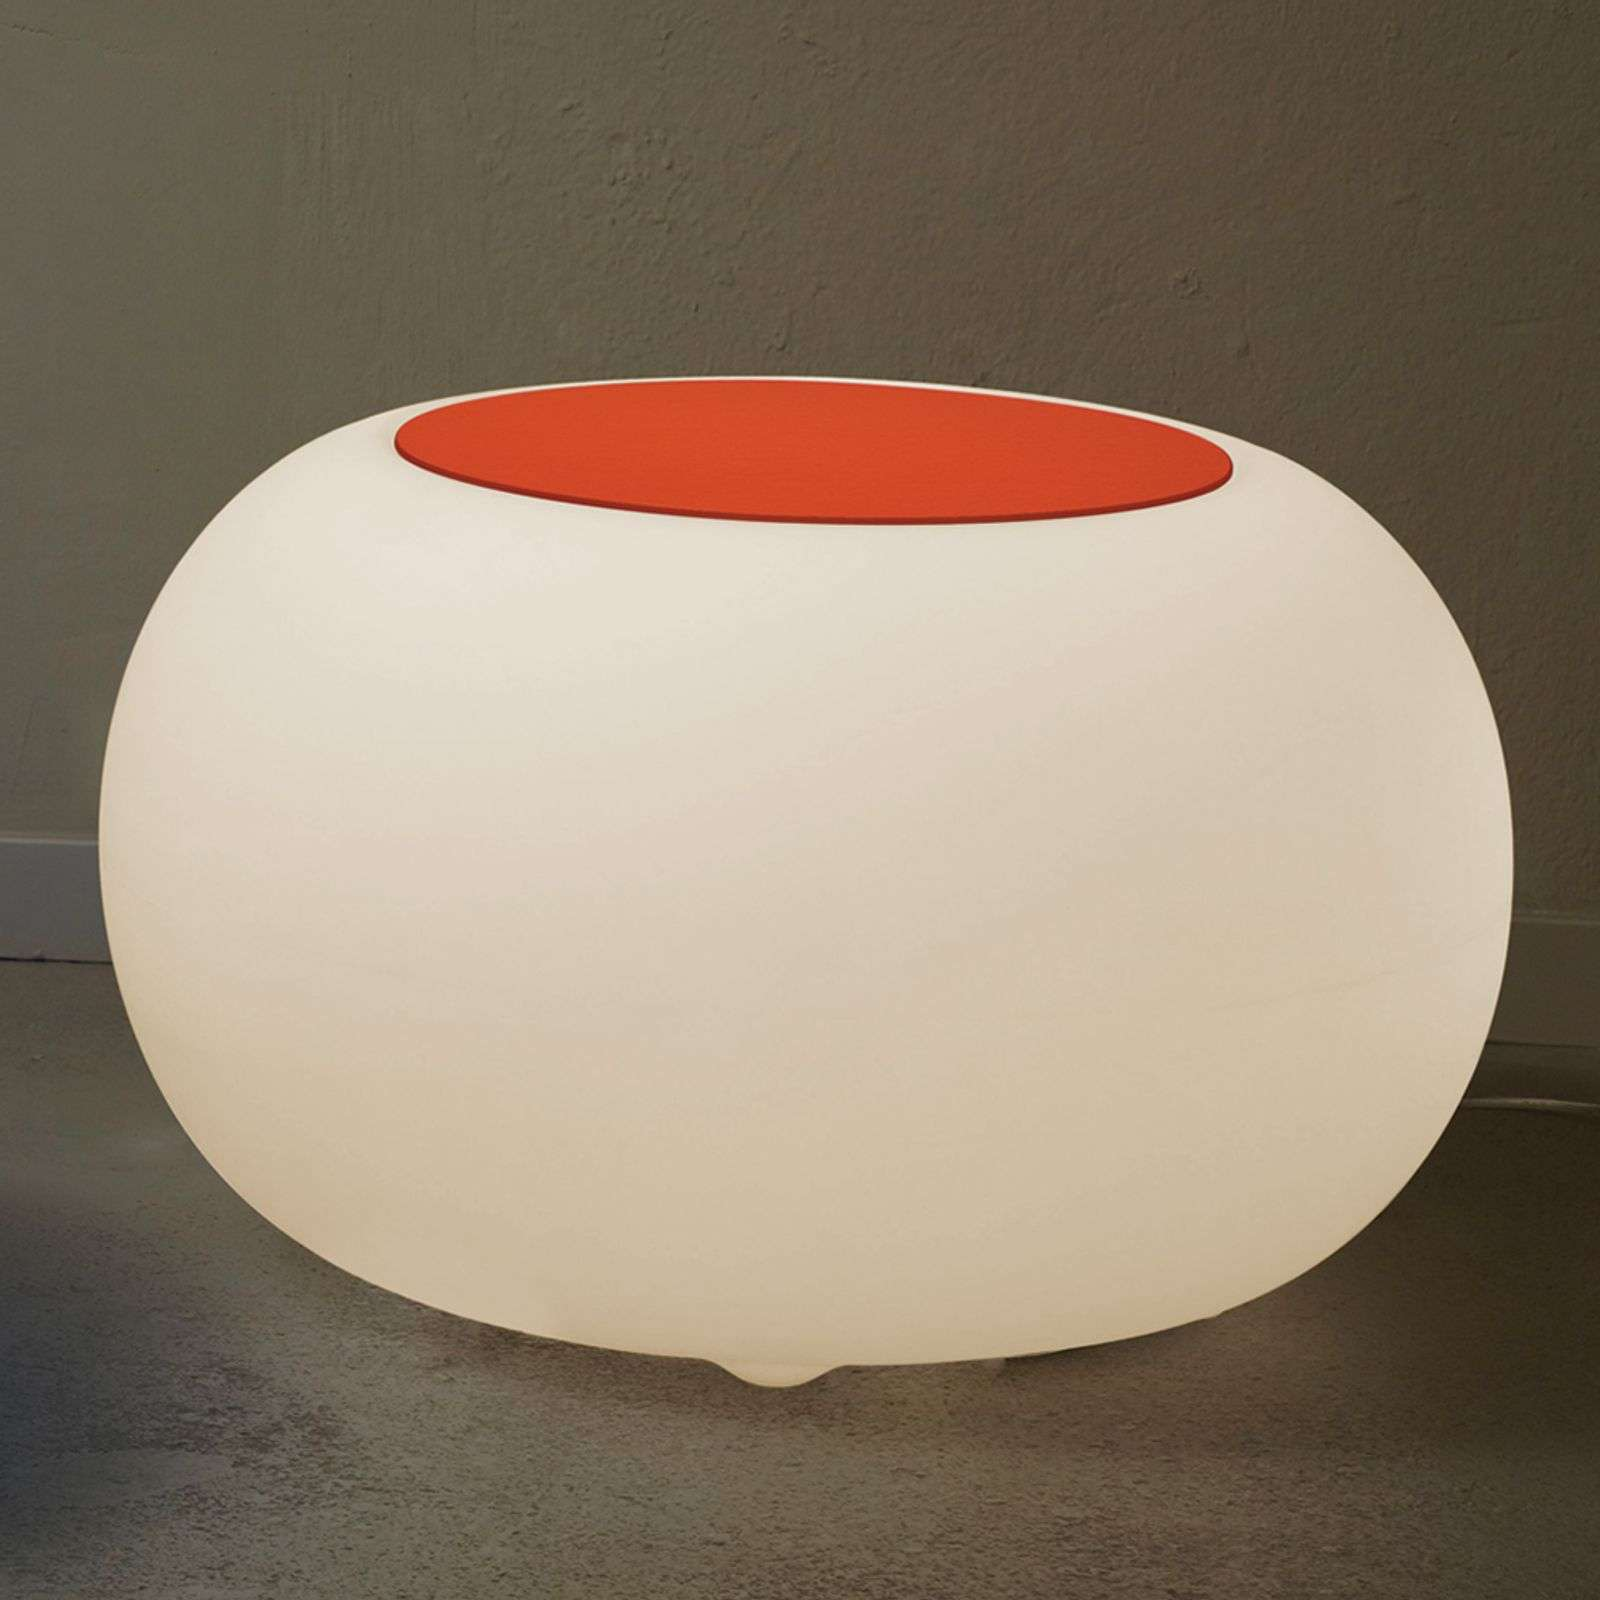 Table d'appoint BUBBLE LED RVB avec feutre orange